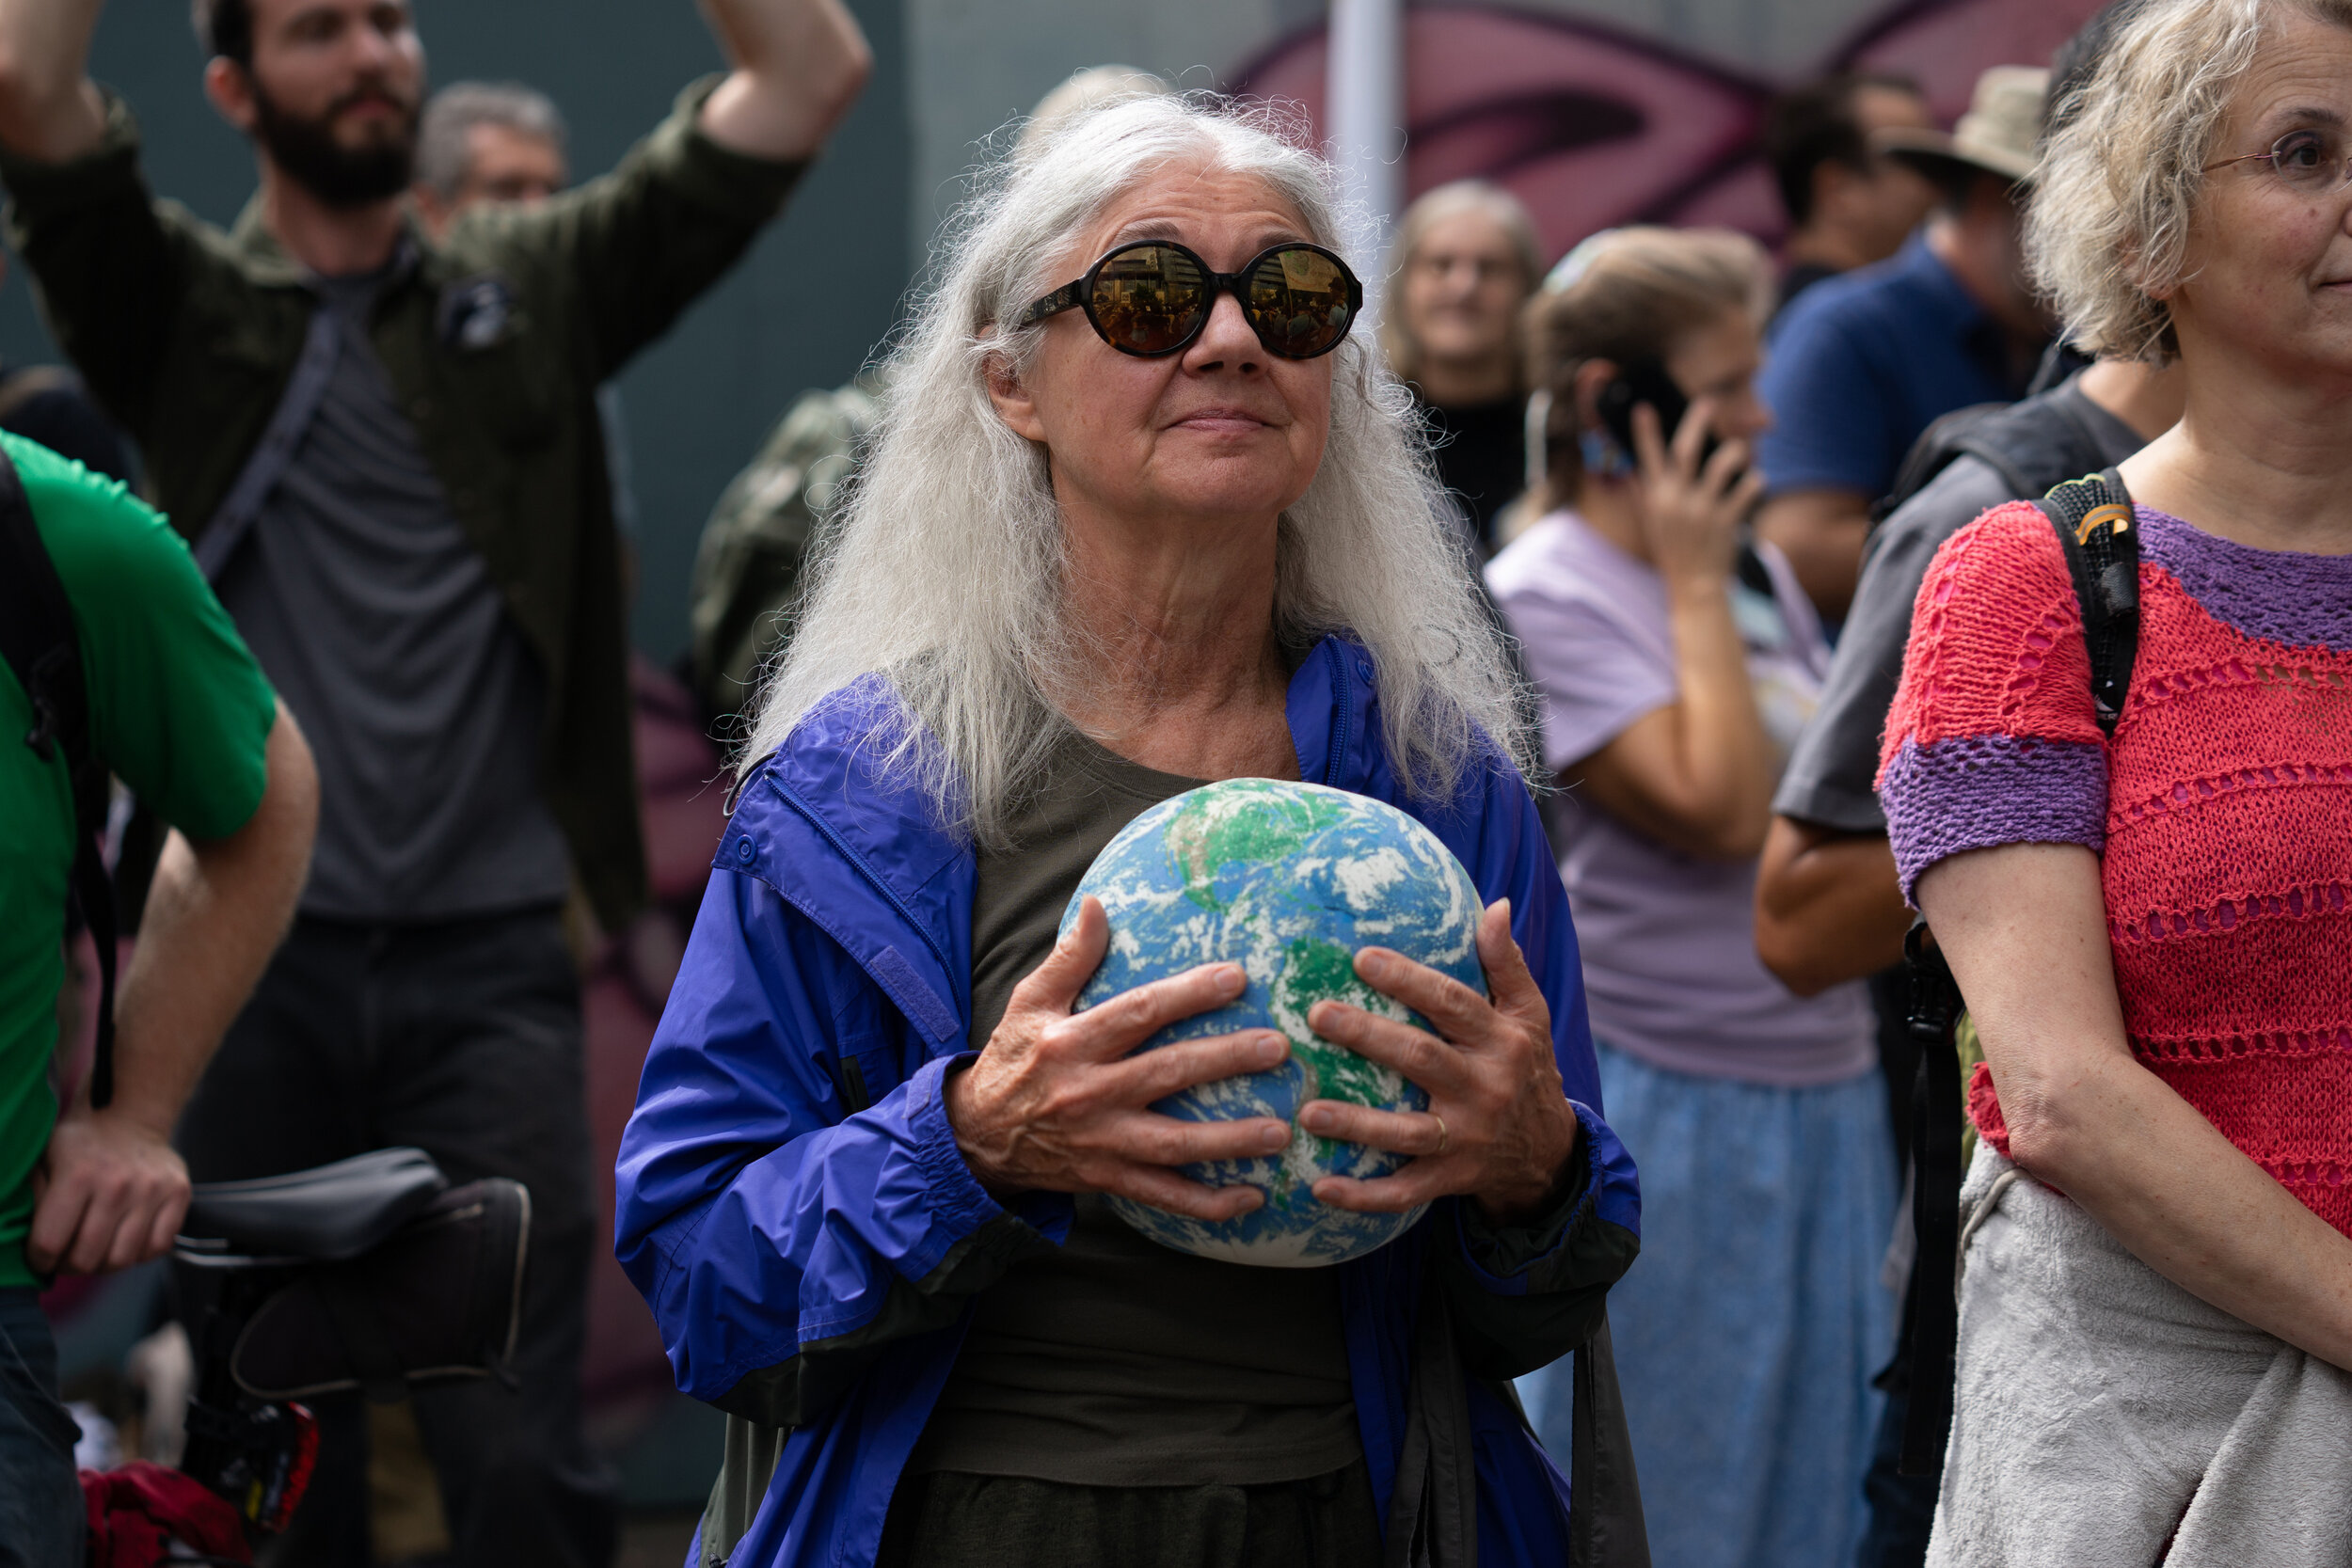 A demonstrator holds an inflatable globe while listening to speakers at City Hall during the Global Climate Strike in Seattle, Washington, U.S., on Friday, Sept. 20, 2019 (Bloomberg)